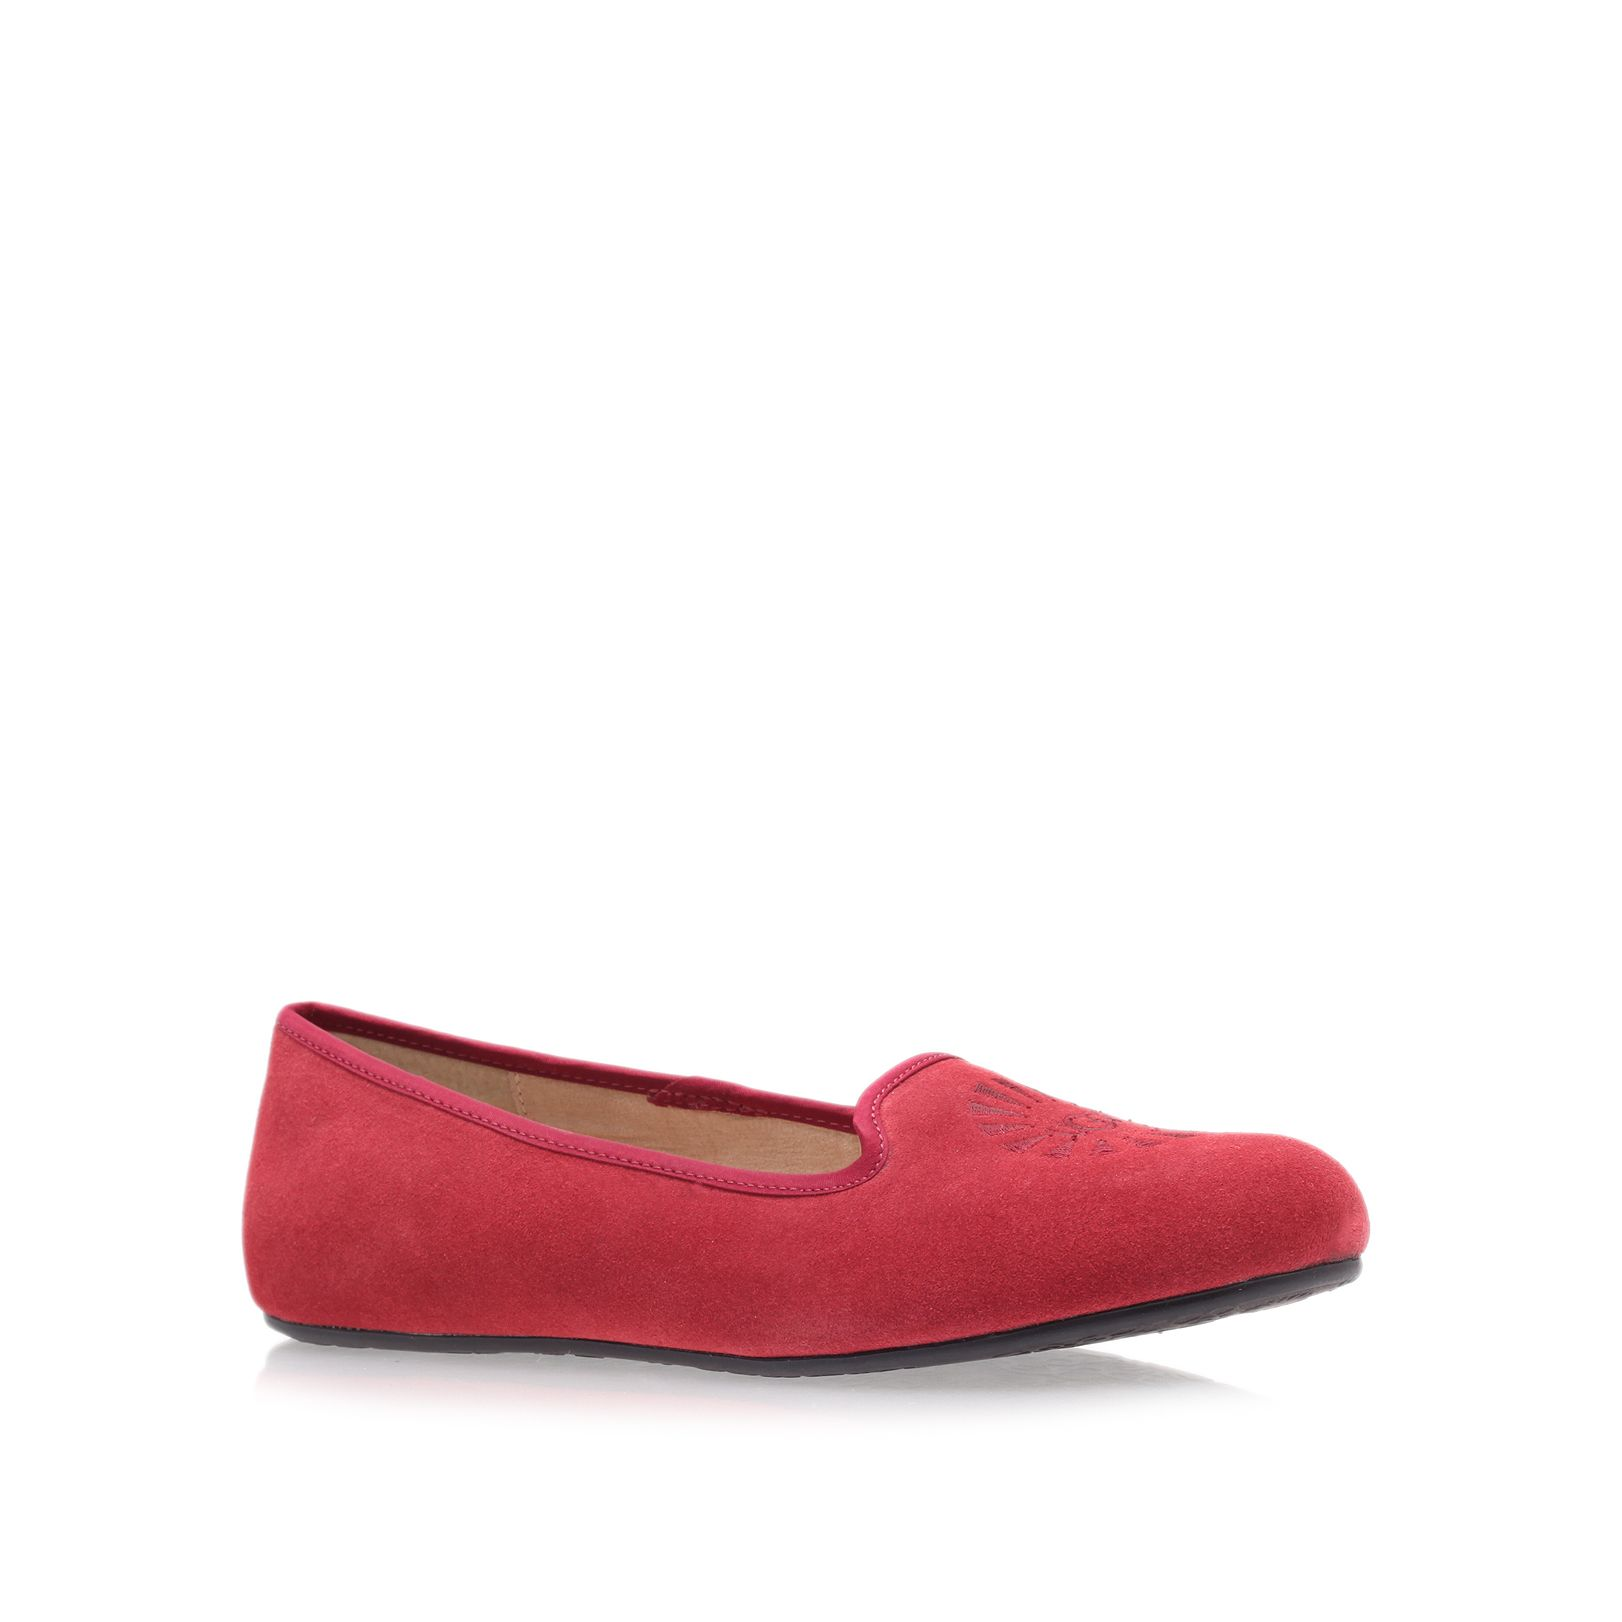 Alloway loafer shoes